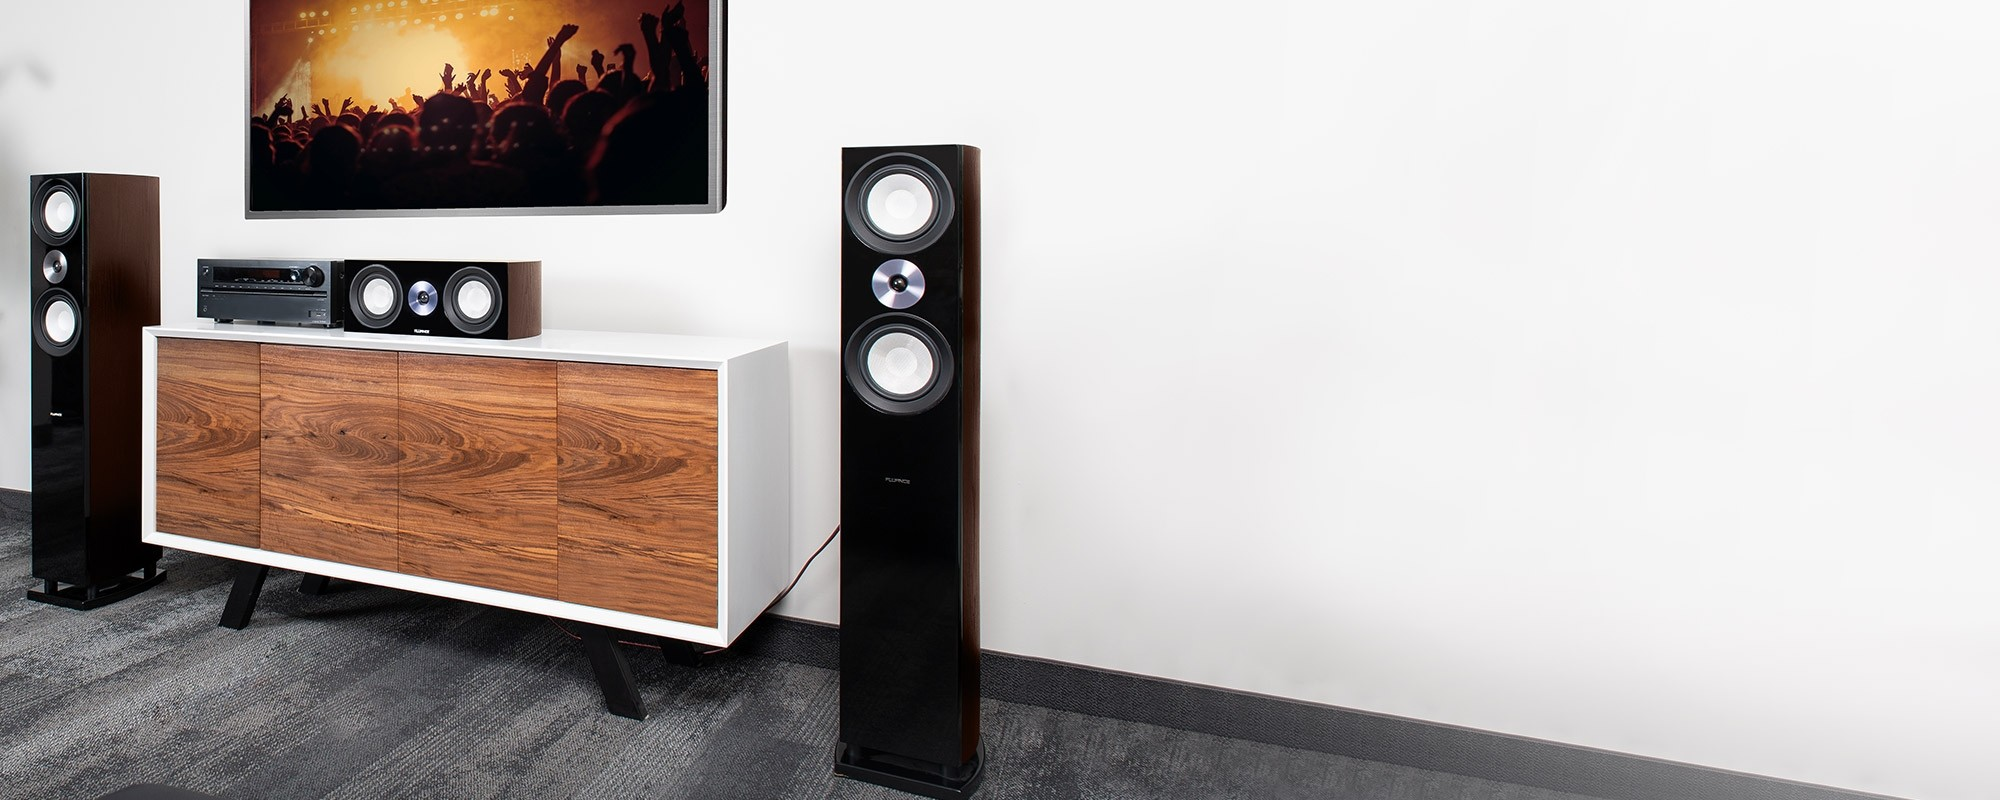 XL8FW Floorstanding Speakers with XL8C Center Channel Speaker - Home Theater Setup